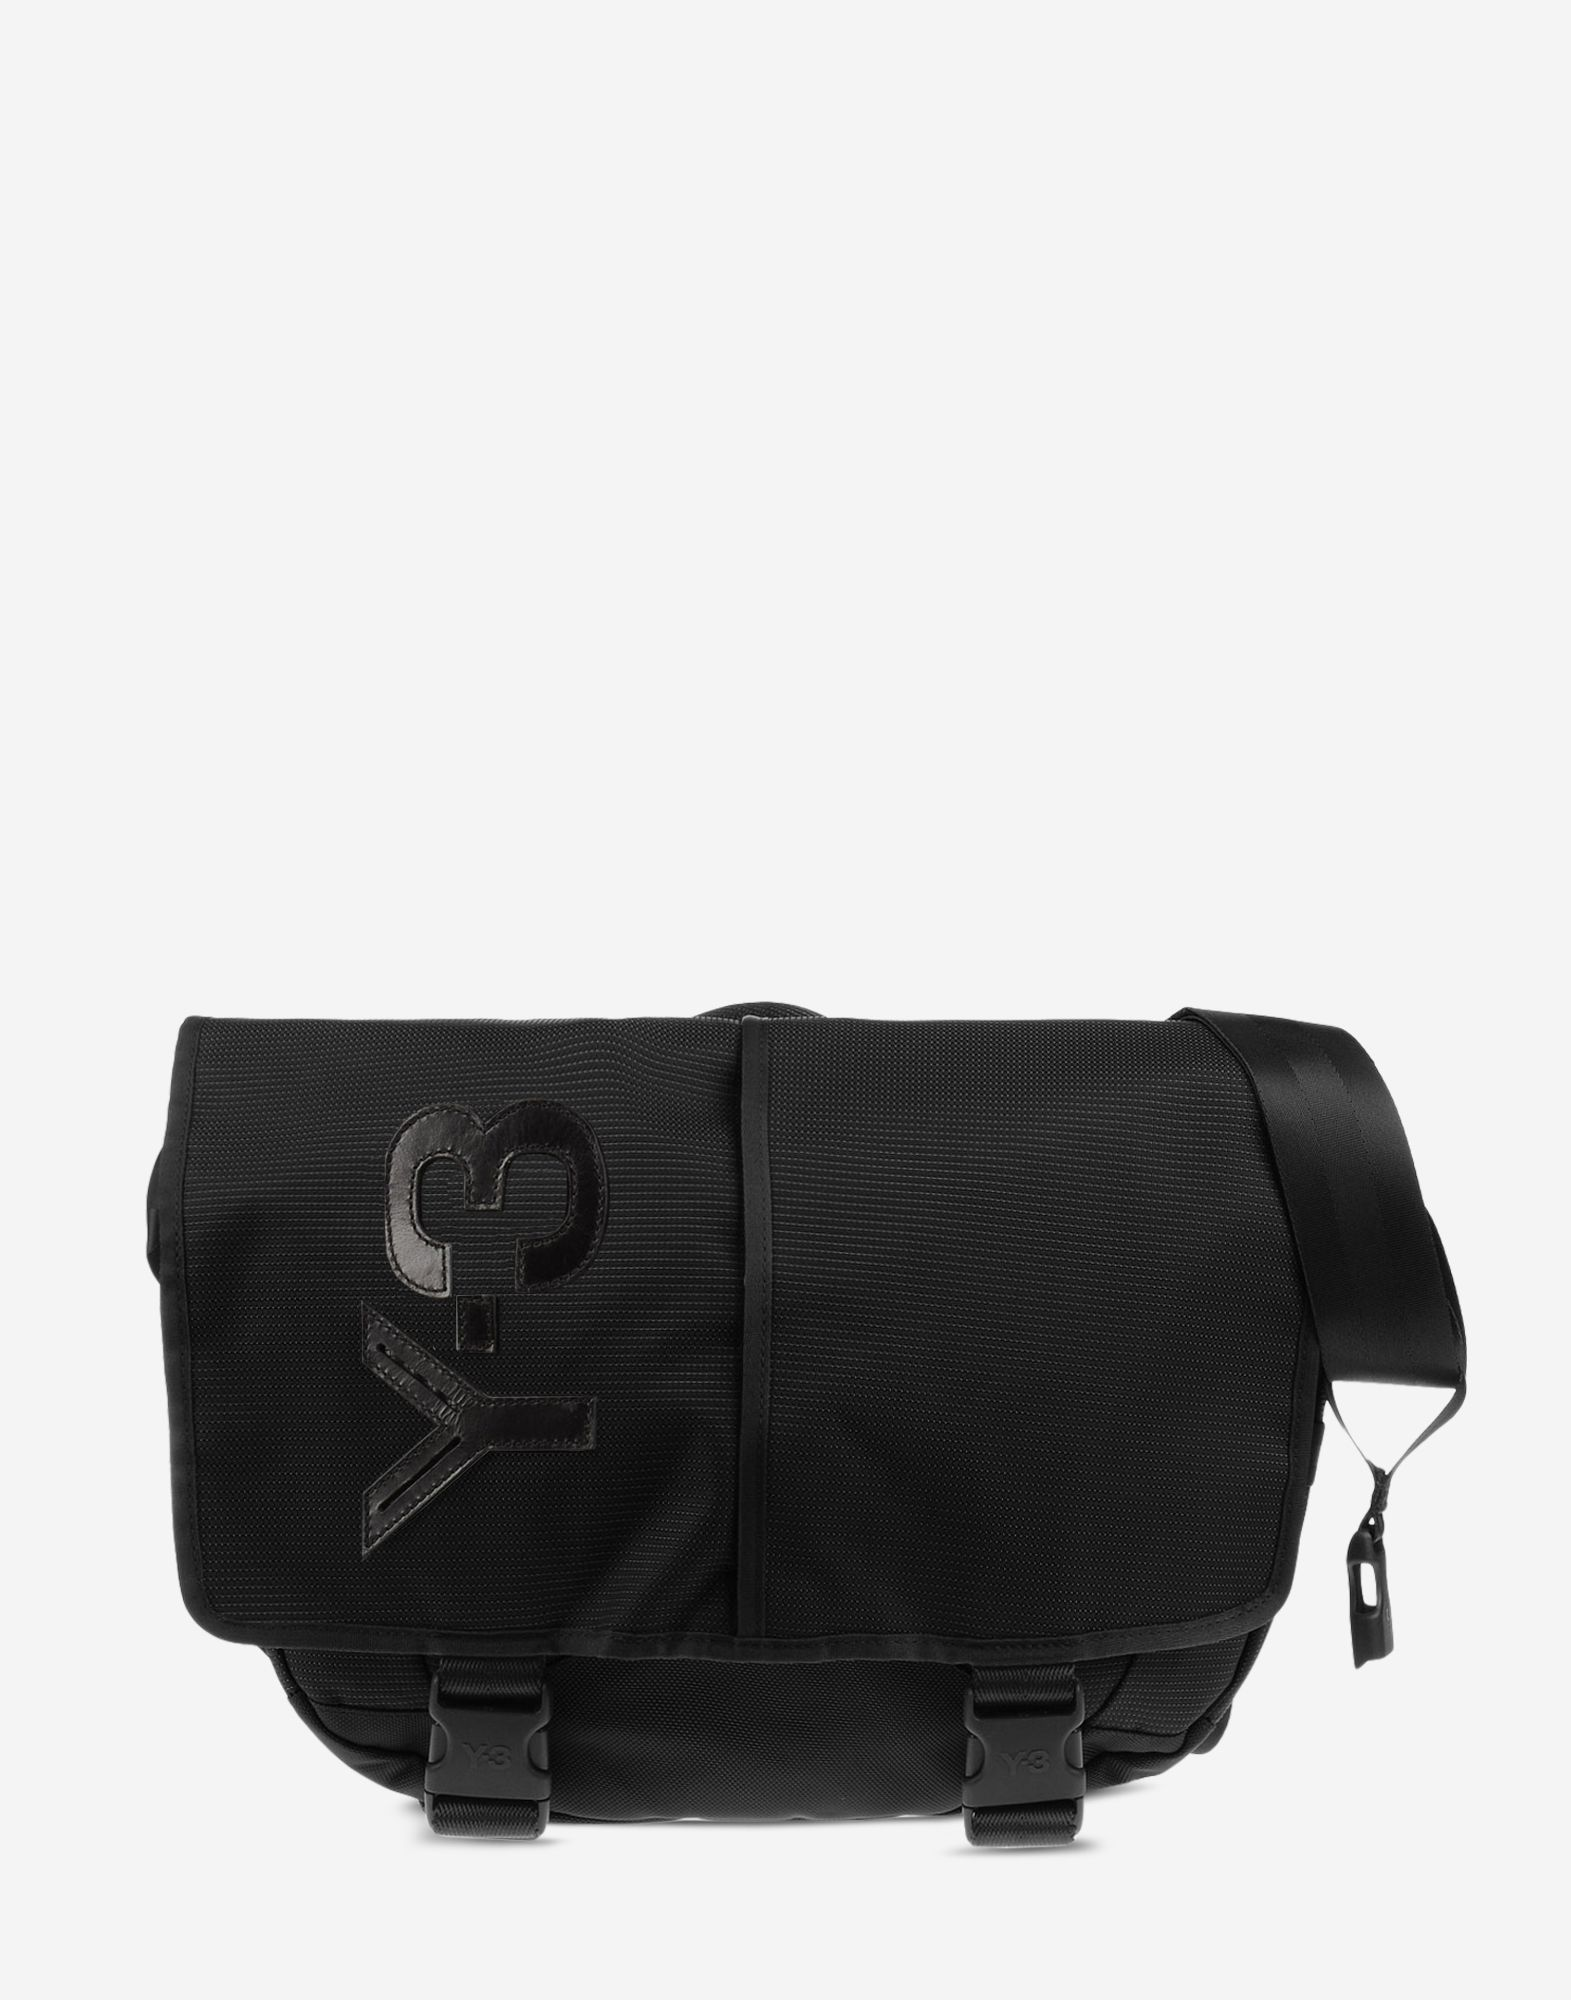 fe409e5a7e adidas small messenger bag Sale,up to 55% Discounts